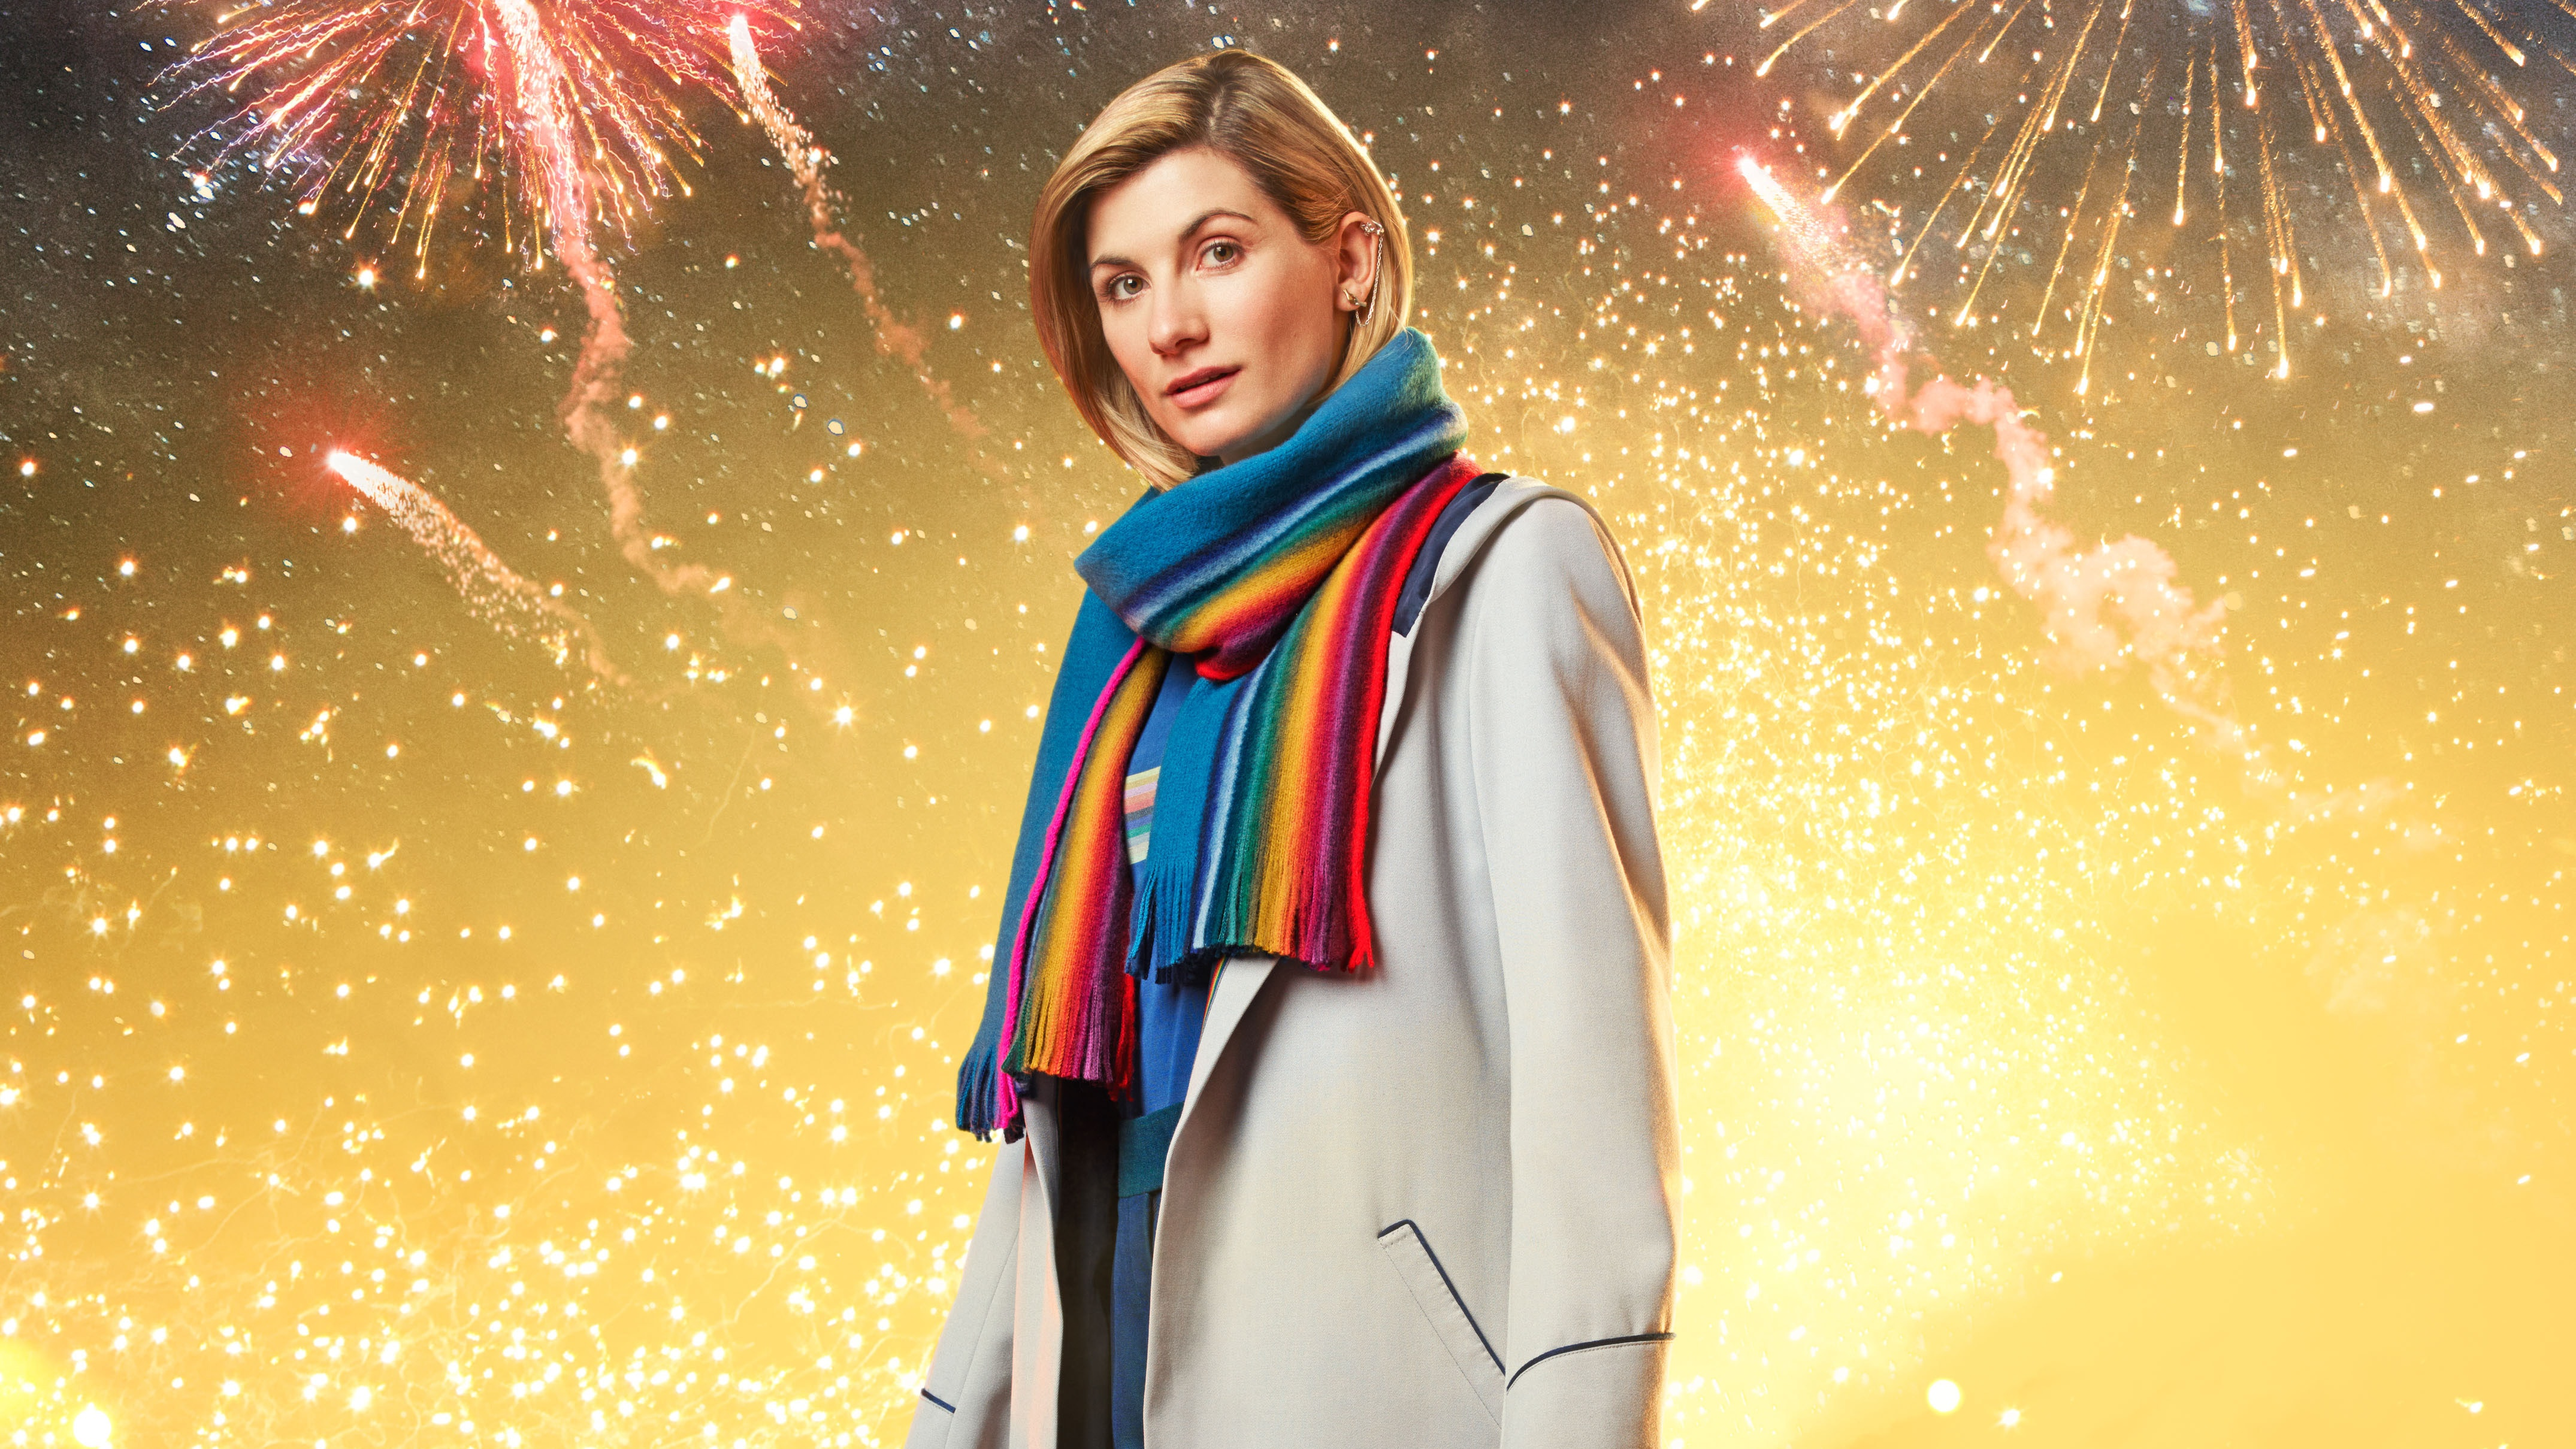 Watch Doctor Who Christmas Special 2020 Watch Doctor Who Christmas Special 2020 | Ncyddb.newyearhouse.site